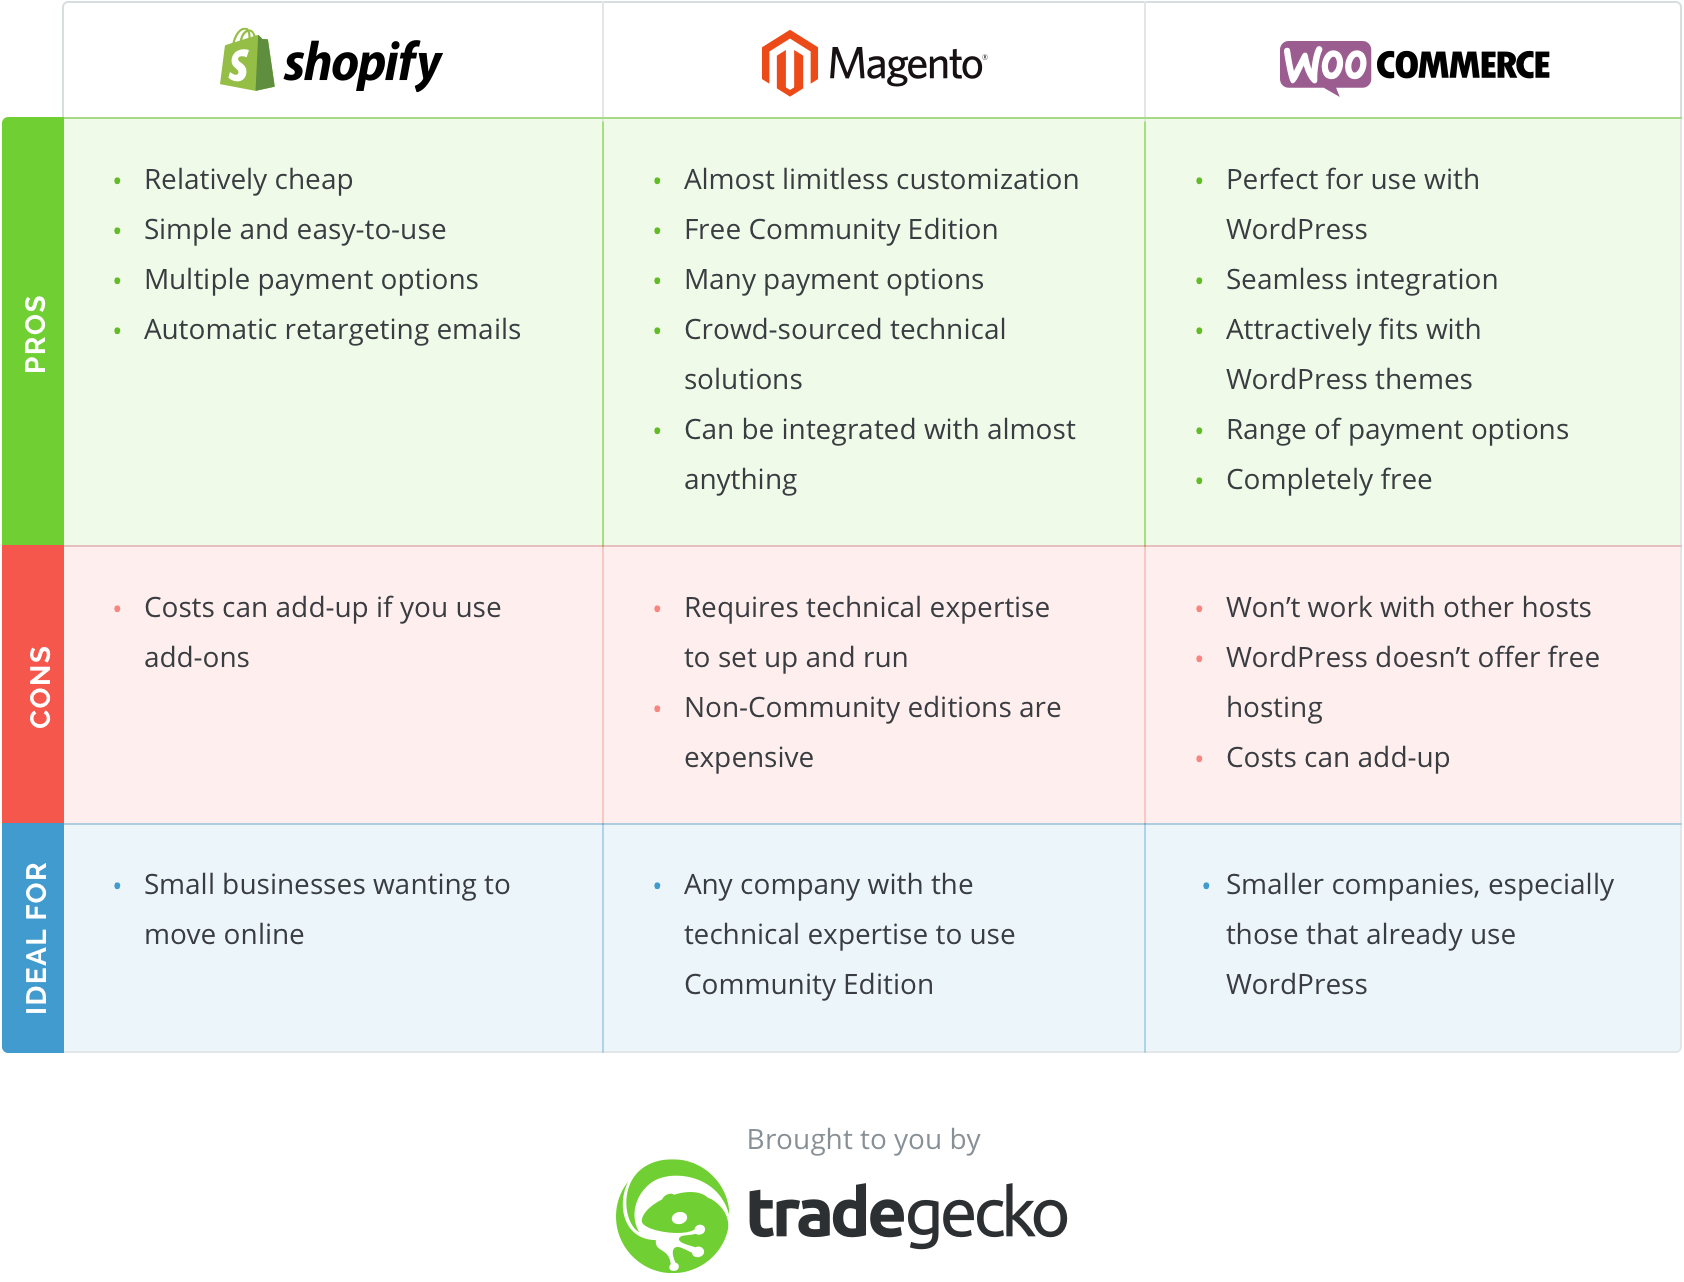 comparison best ecommerce platform for small business - Shopify, Magento, Woocommerce